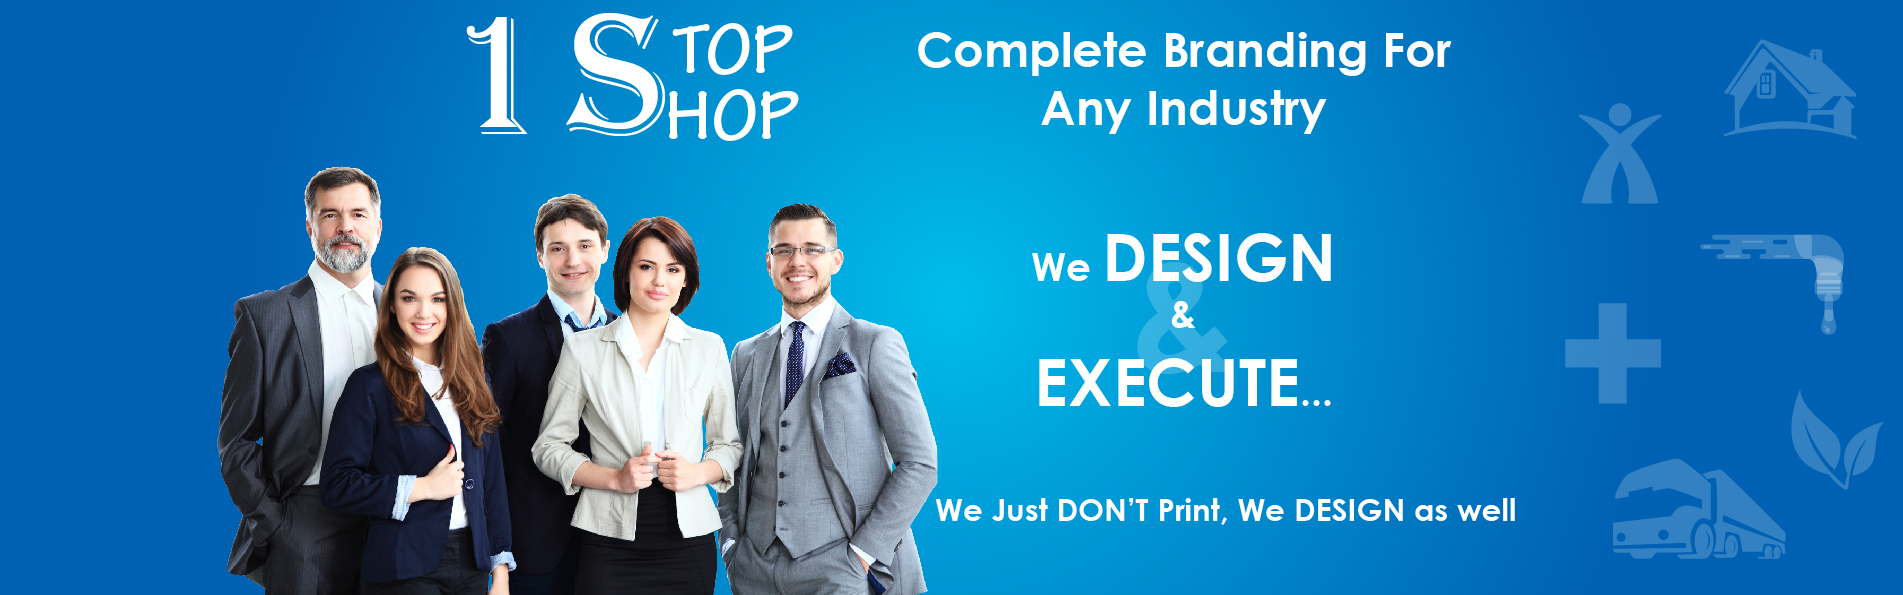 Complete Branding Solution - 1 Stop Shop